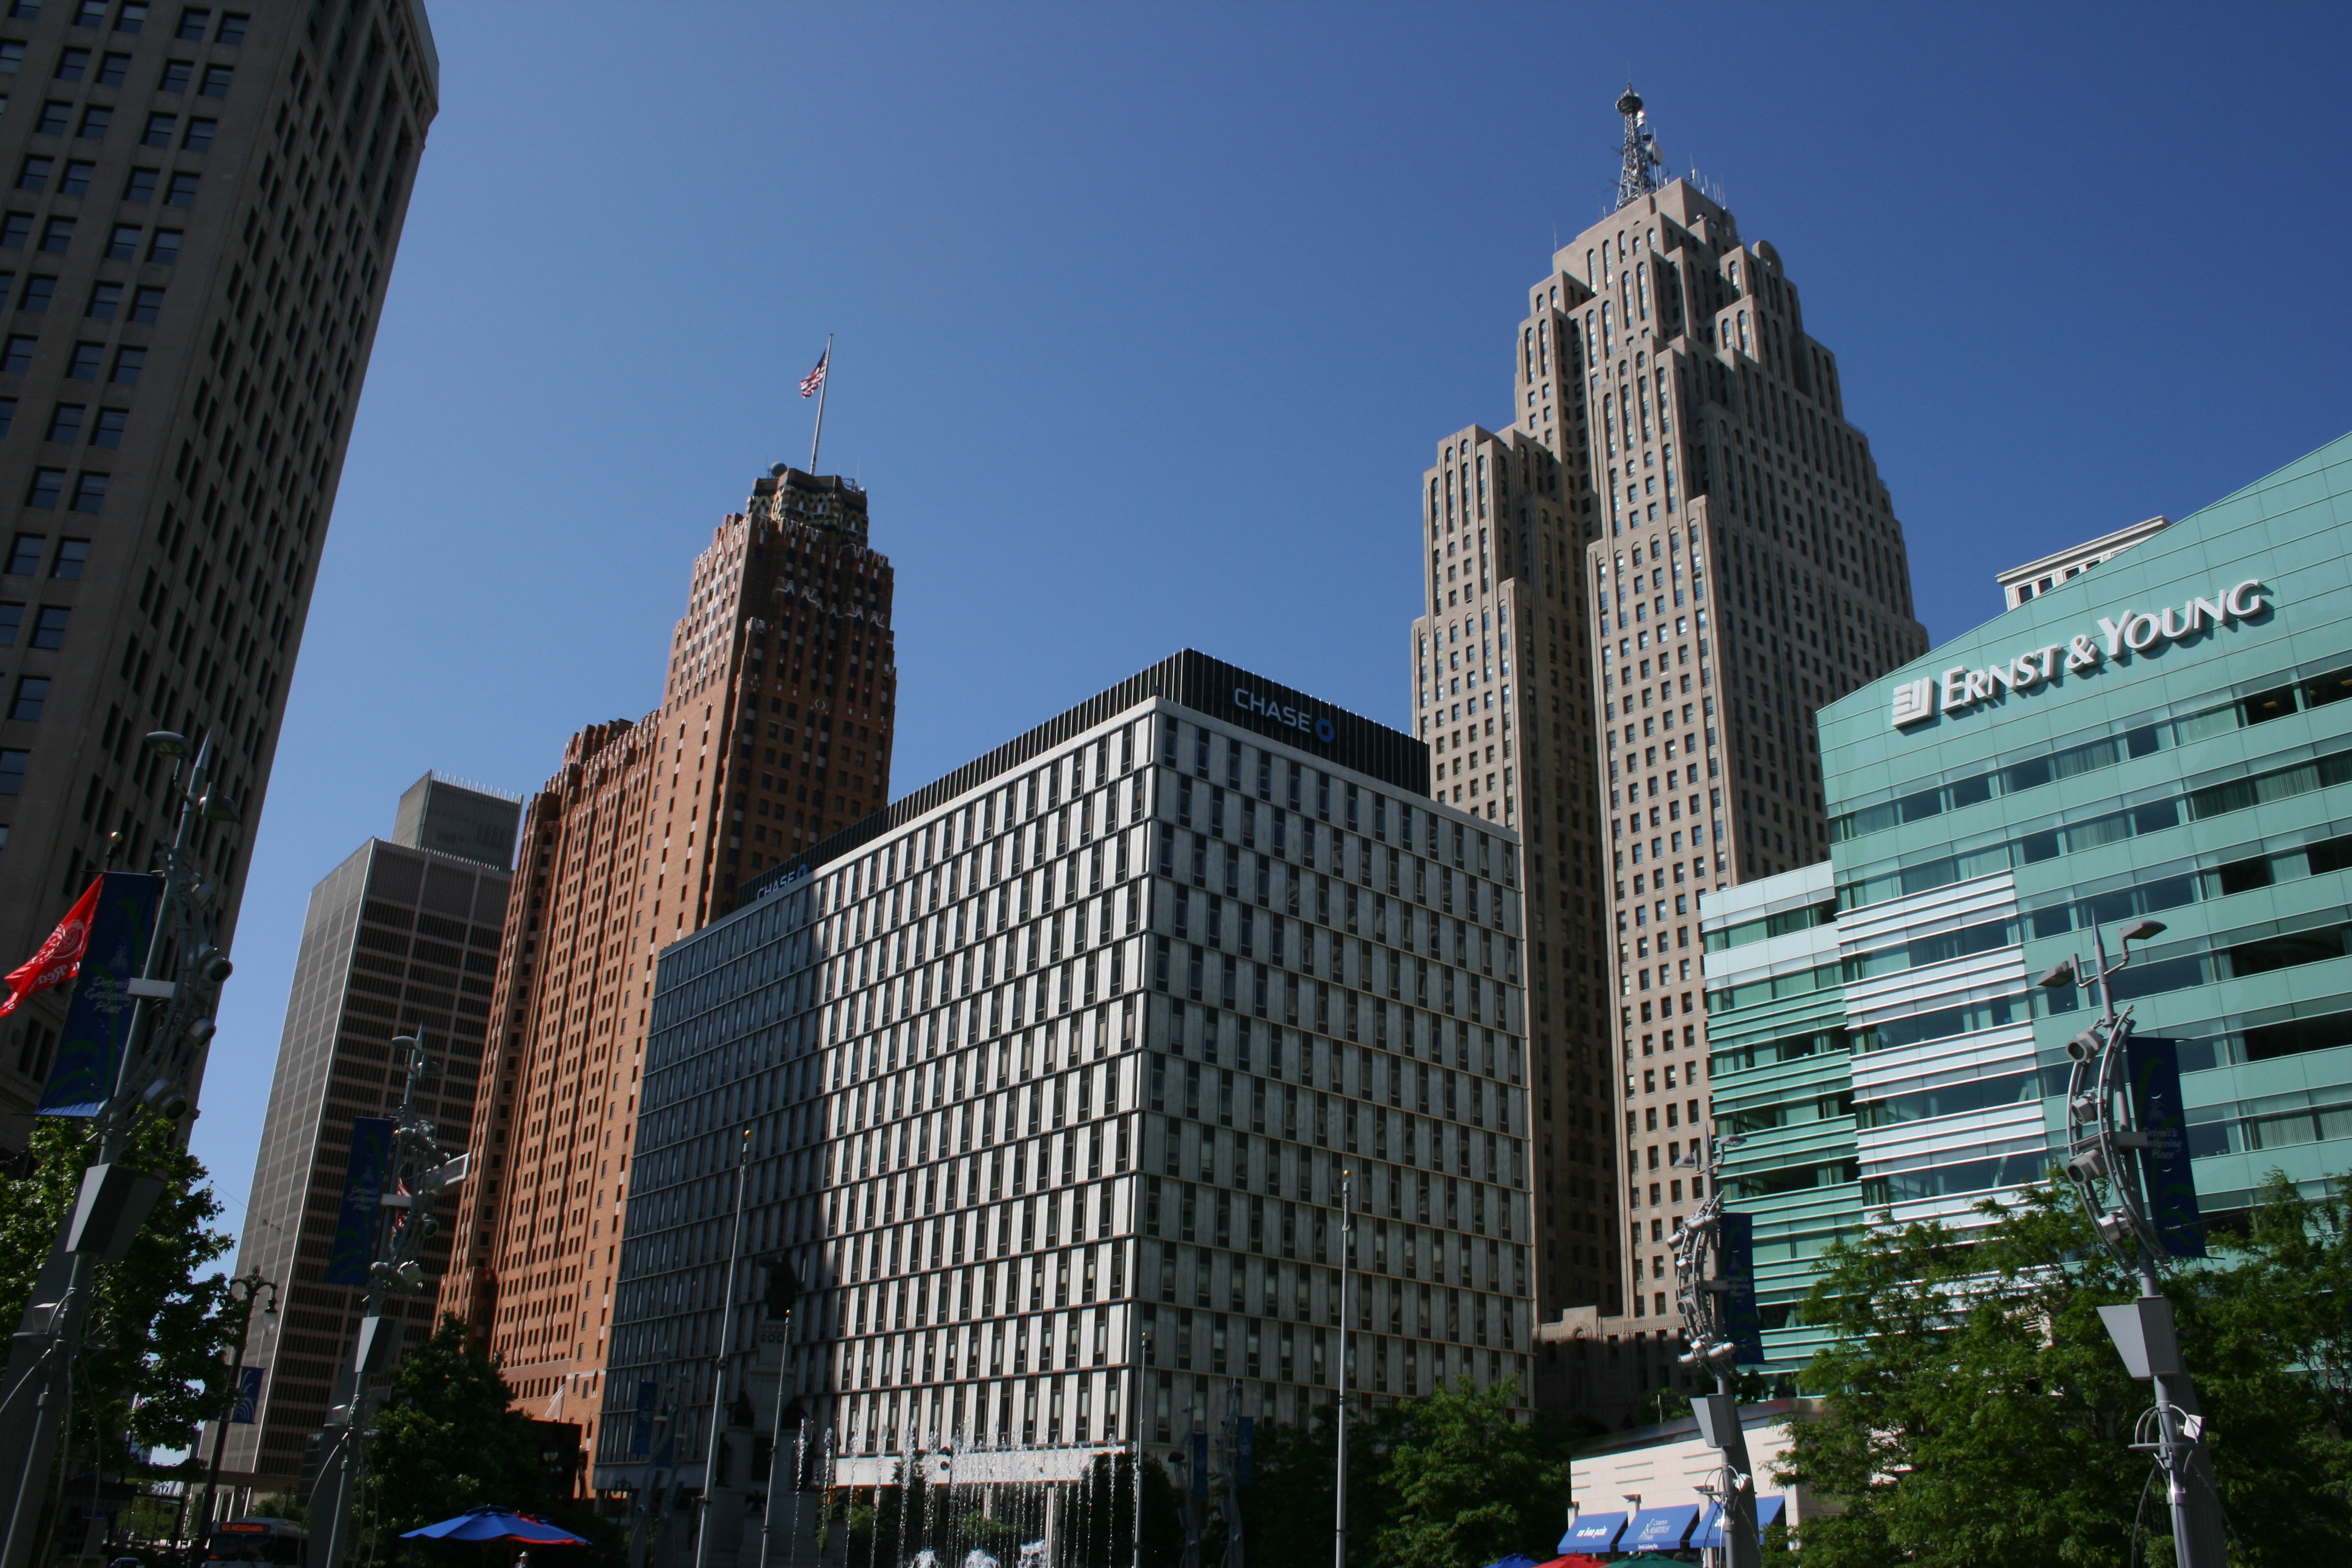 Downtown from Campus Martius